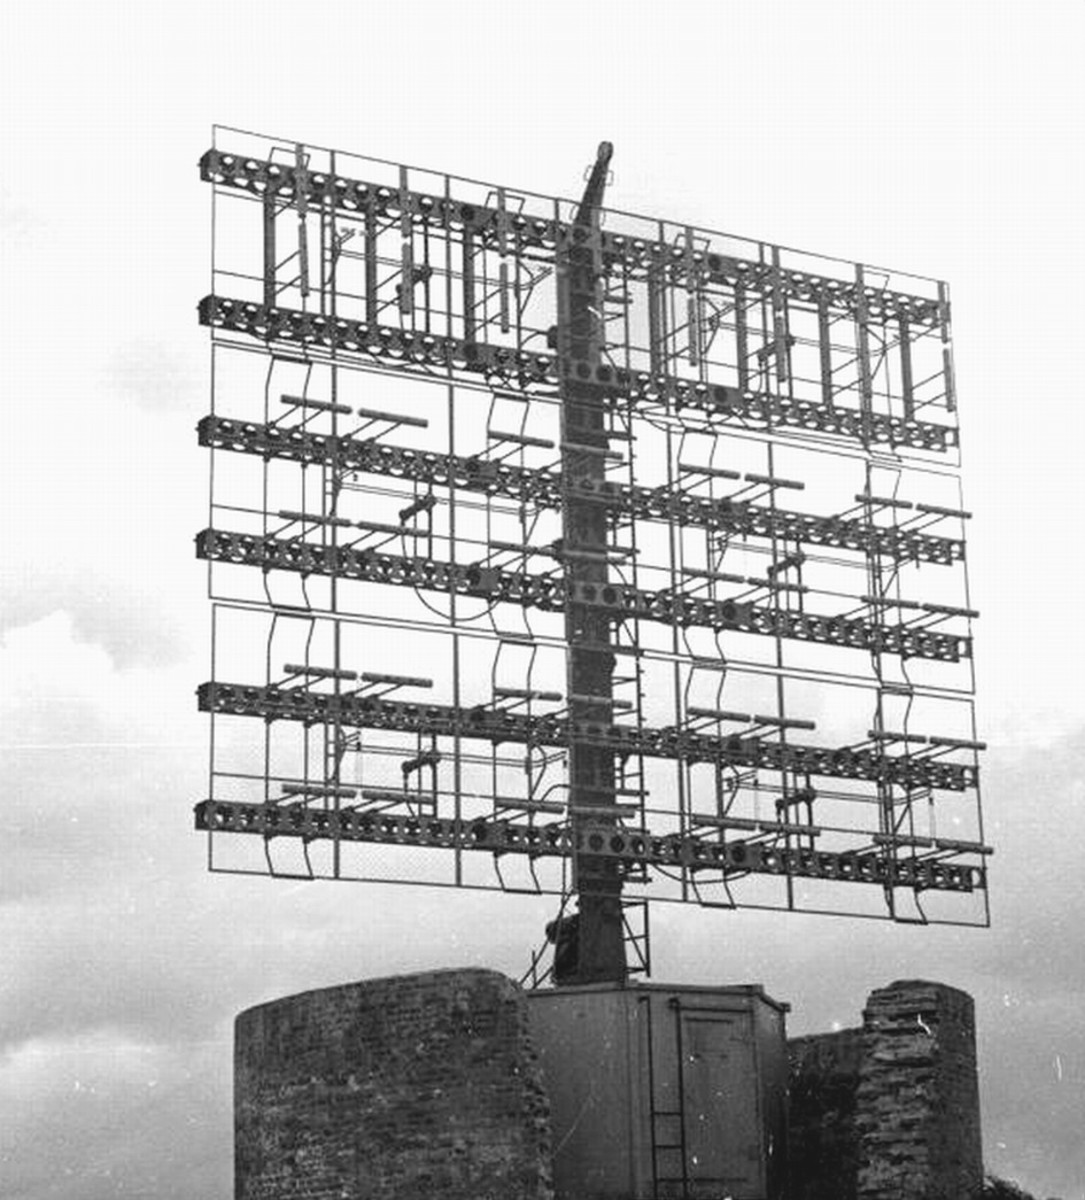 FuMG 80 'Freya, the radar system in operation at Pourville west of Dieppe, Flt Sgt Nissenthall's target to investigate or render useless